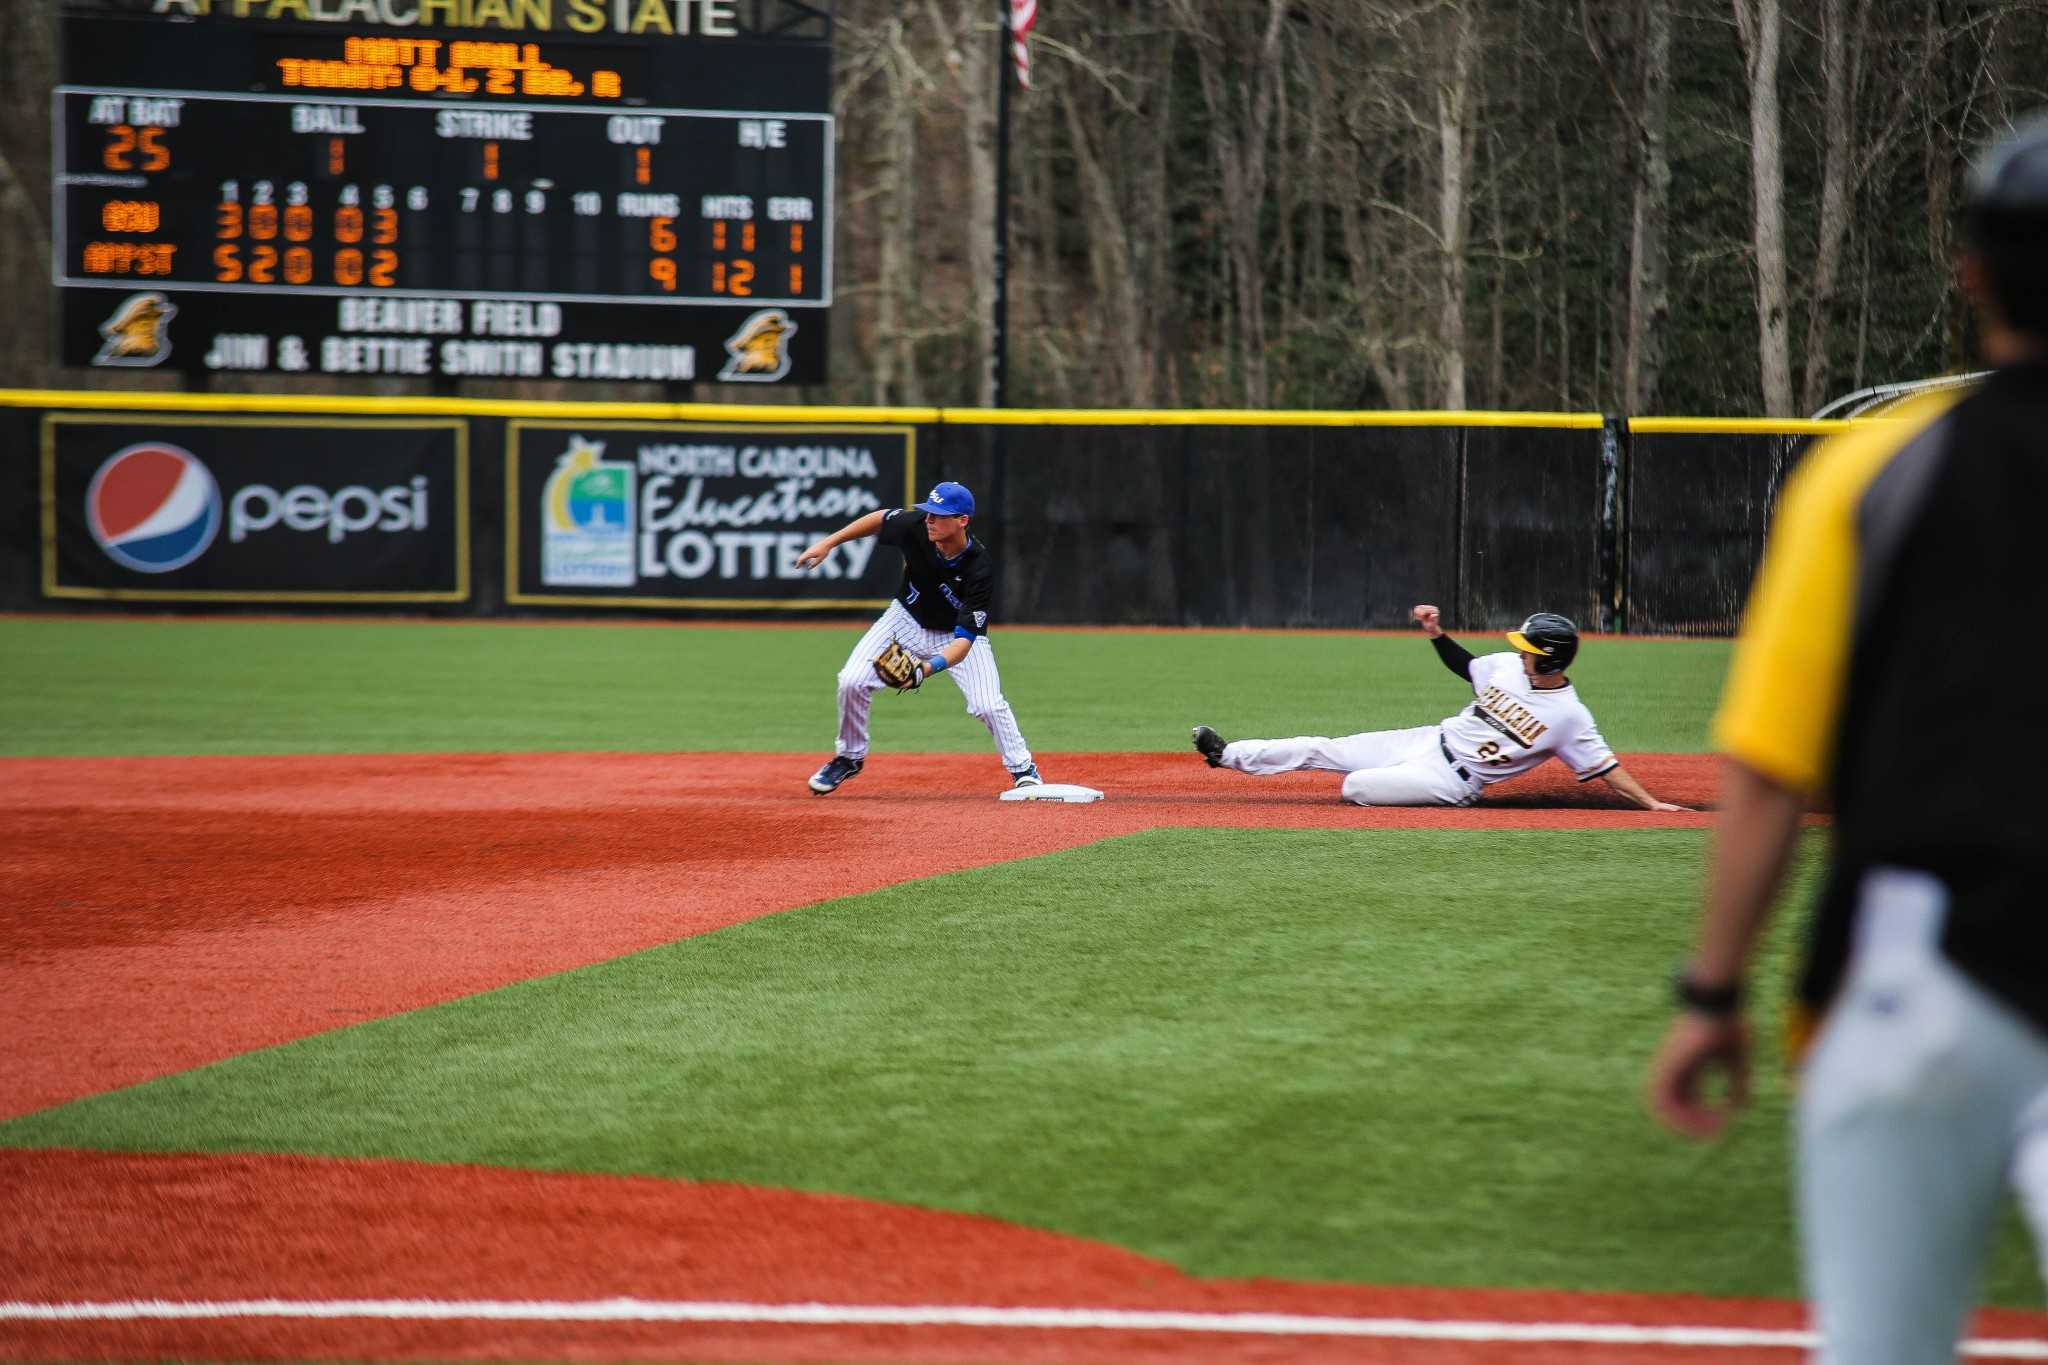 Senior infielder Michael Pierson slides into second base safely during the fifth inning of game two against Georgia State last weekend. Pierson (3-3, three RBI) raised his team-leading average to .355 after the performance. Photo: Gerrit Van Genderen | The Appalachian